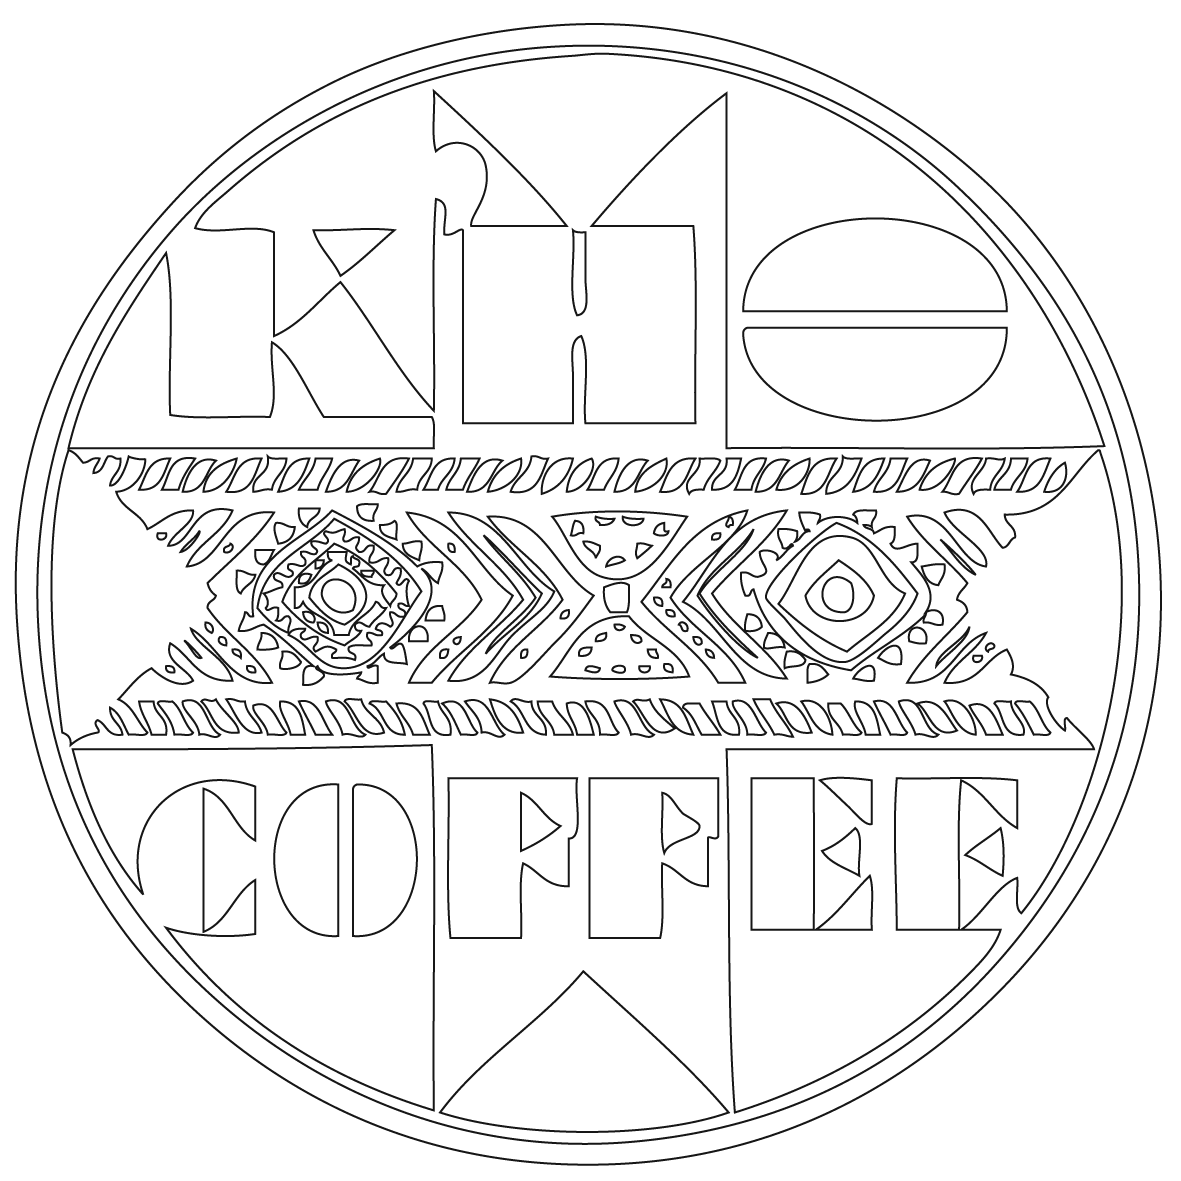 K'Ho Coffee